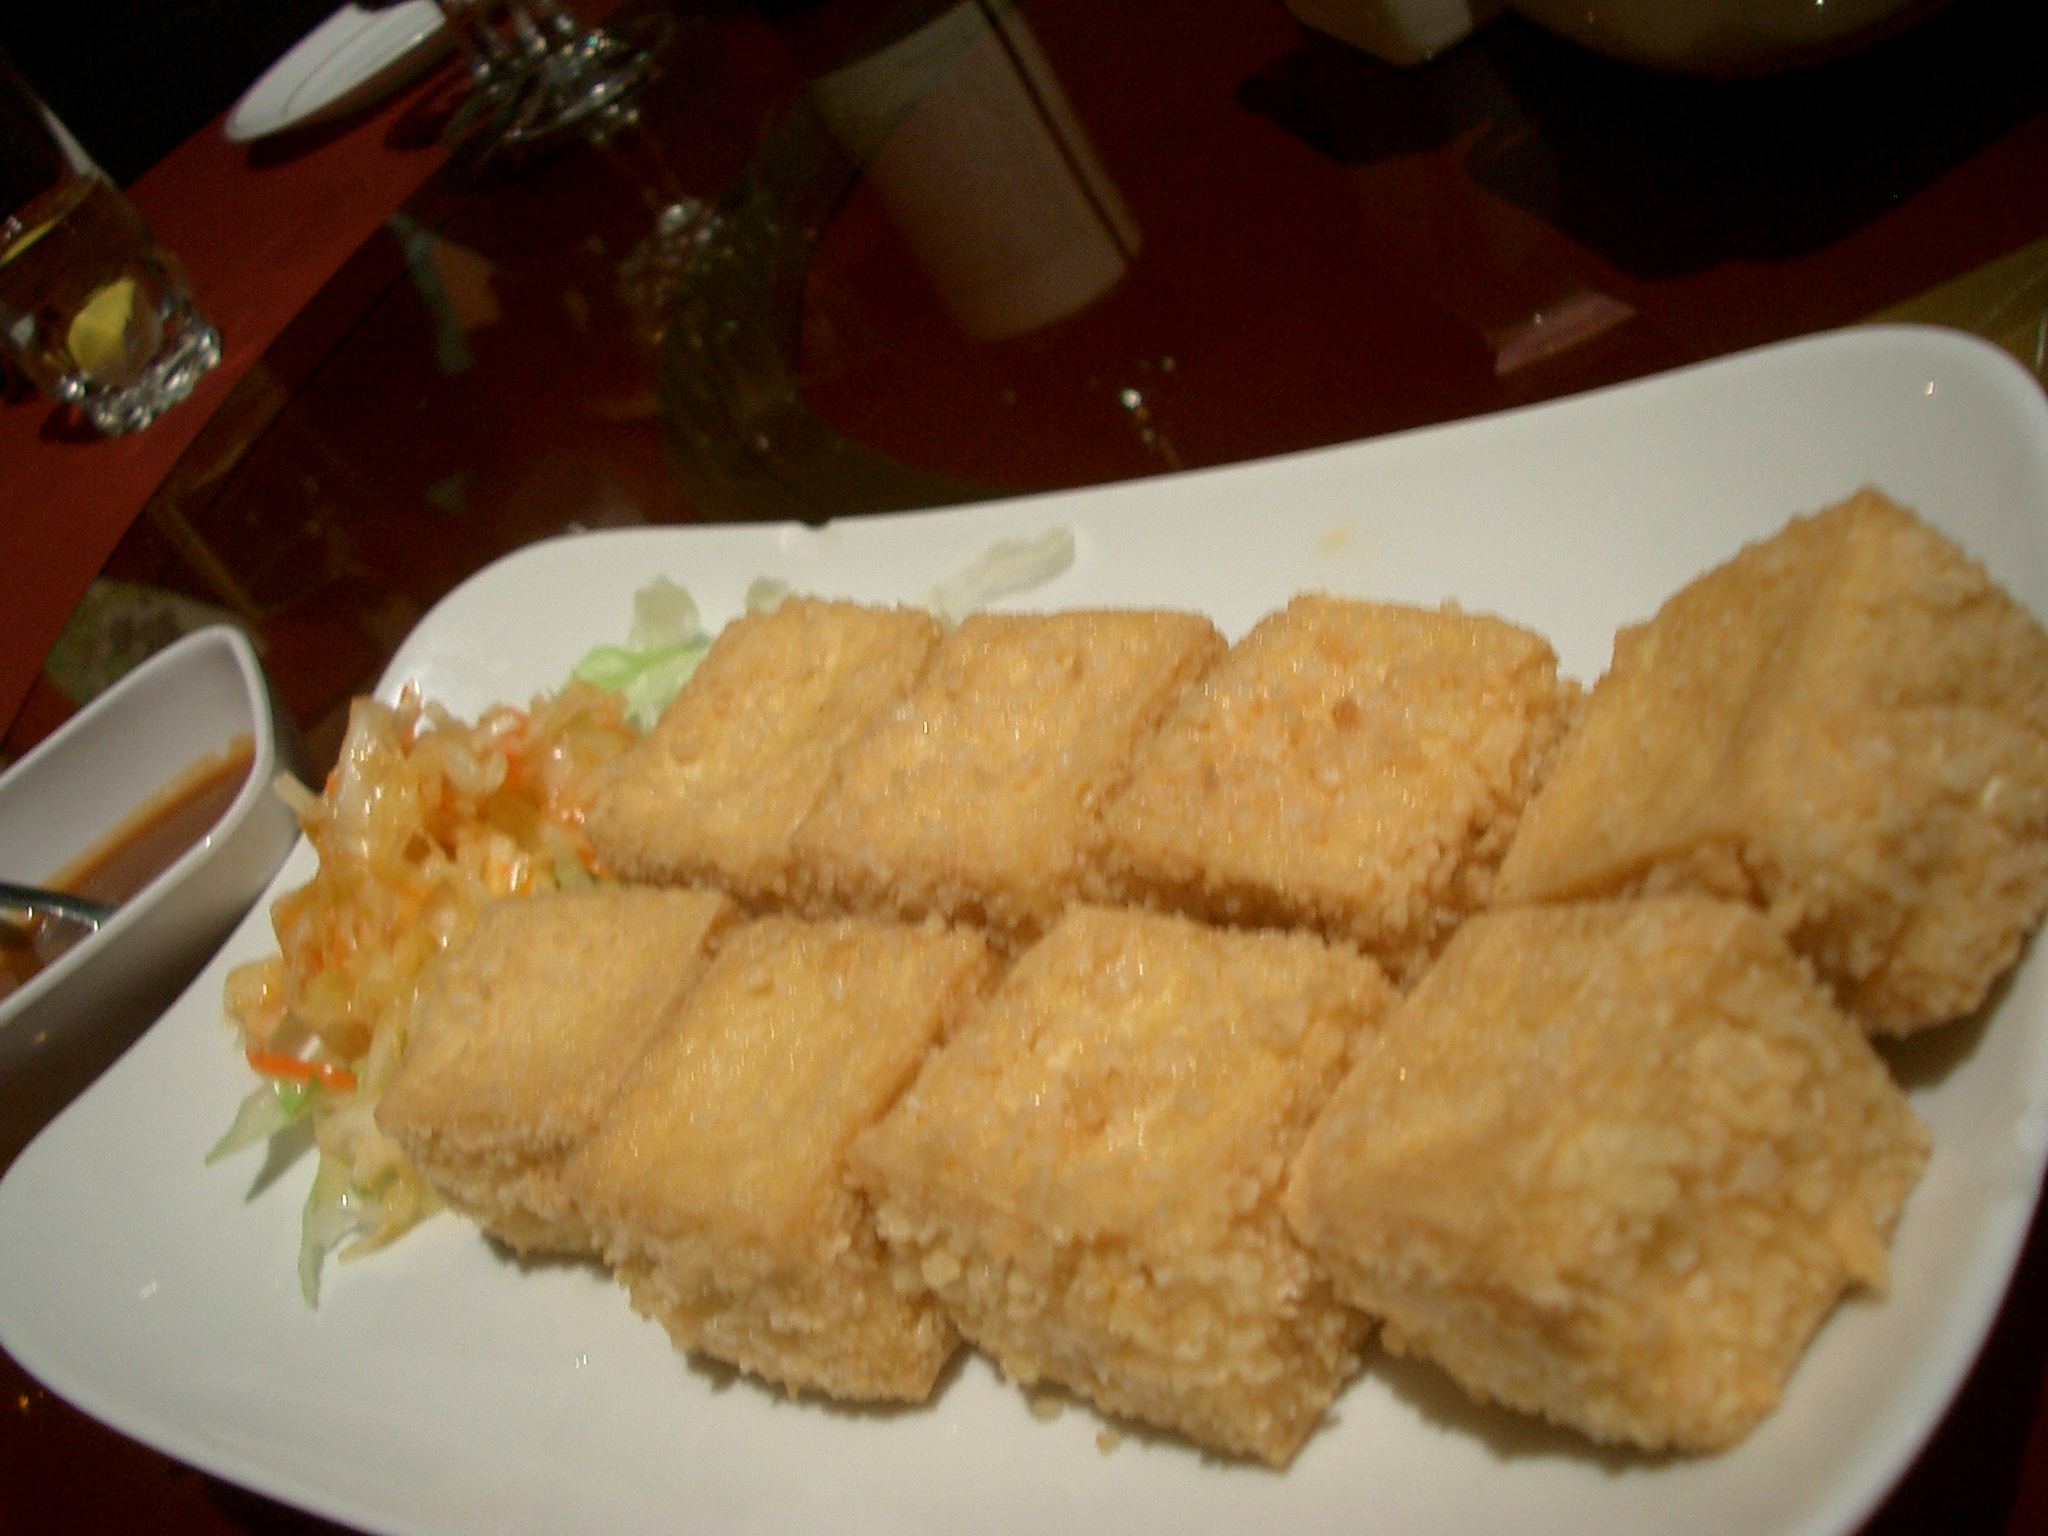 delicately crunchy exterior surrounding soft tofu. The dipping sauce ...